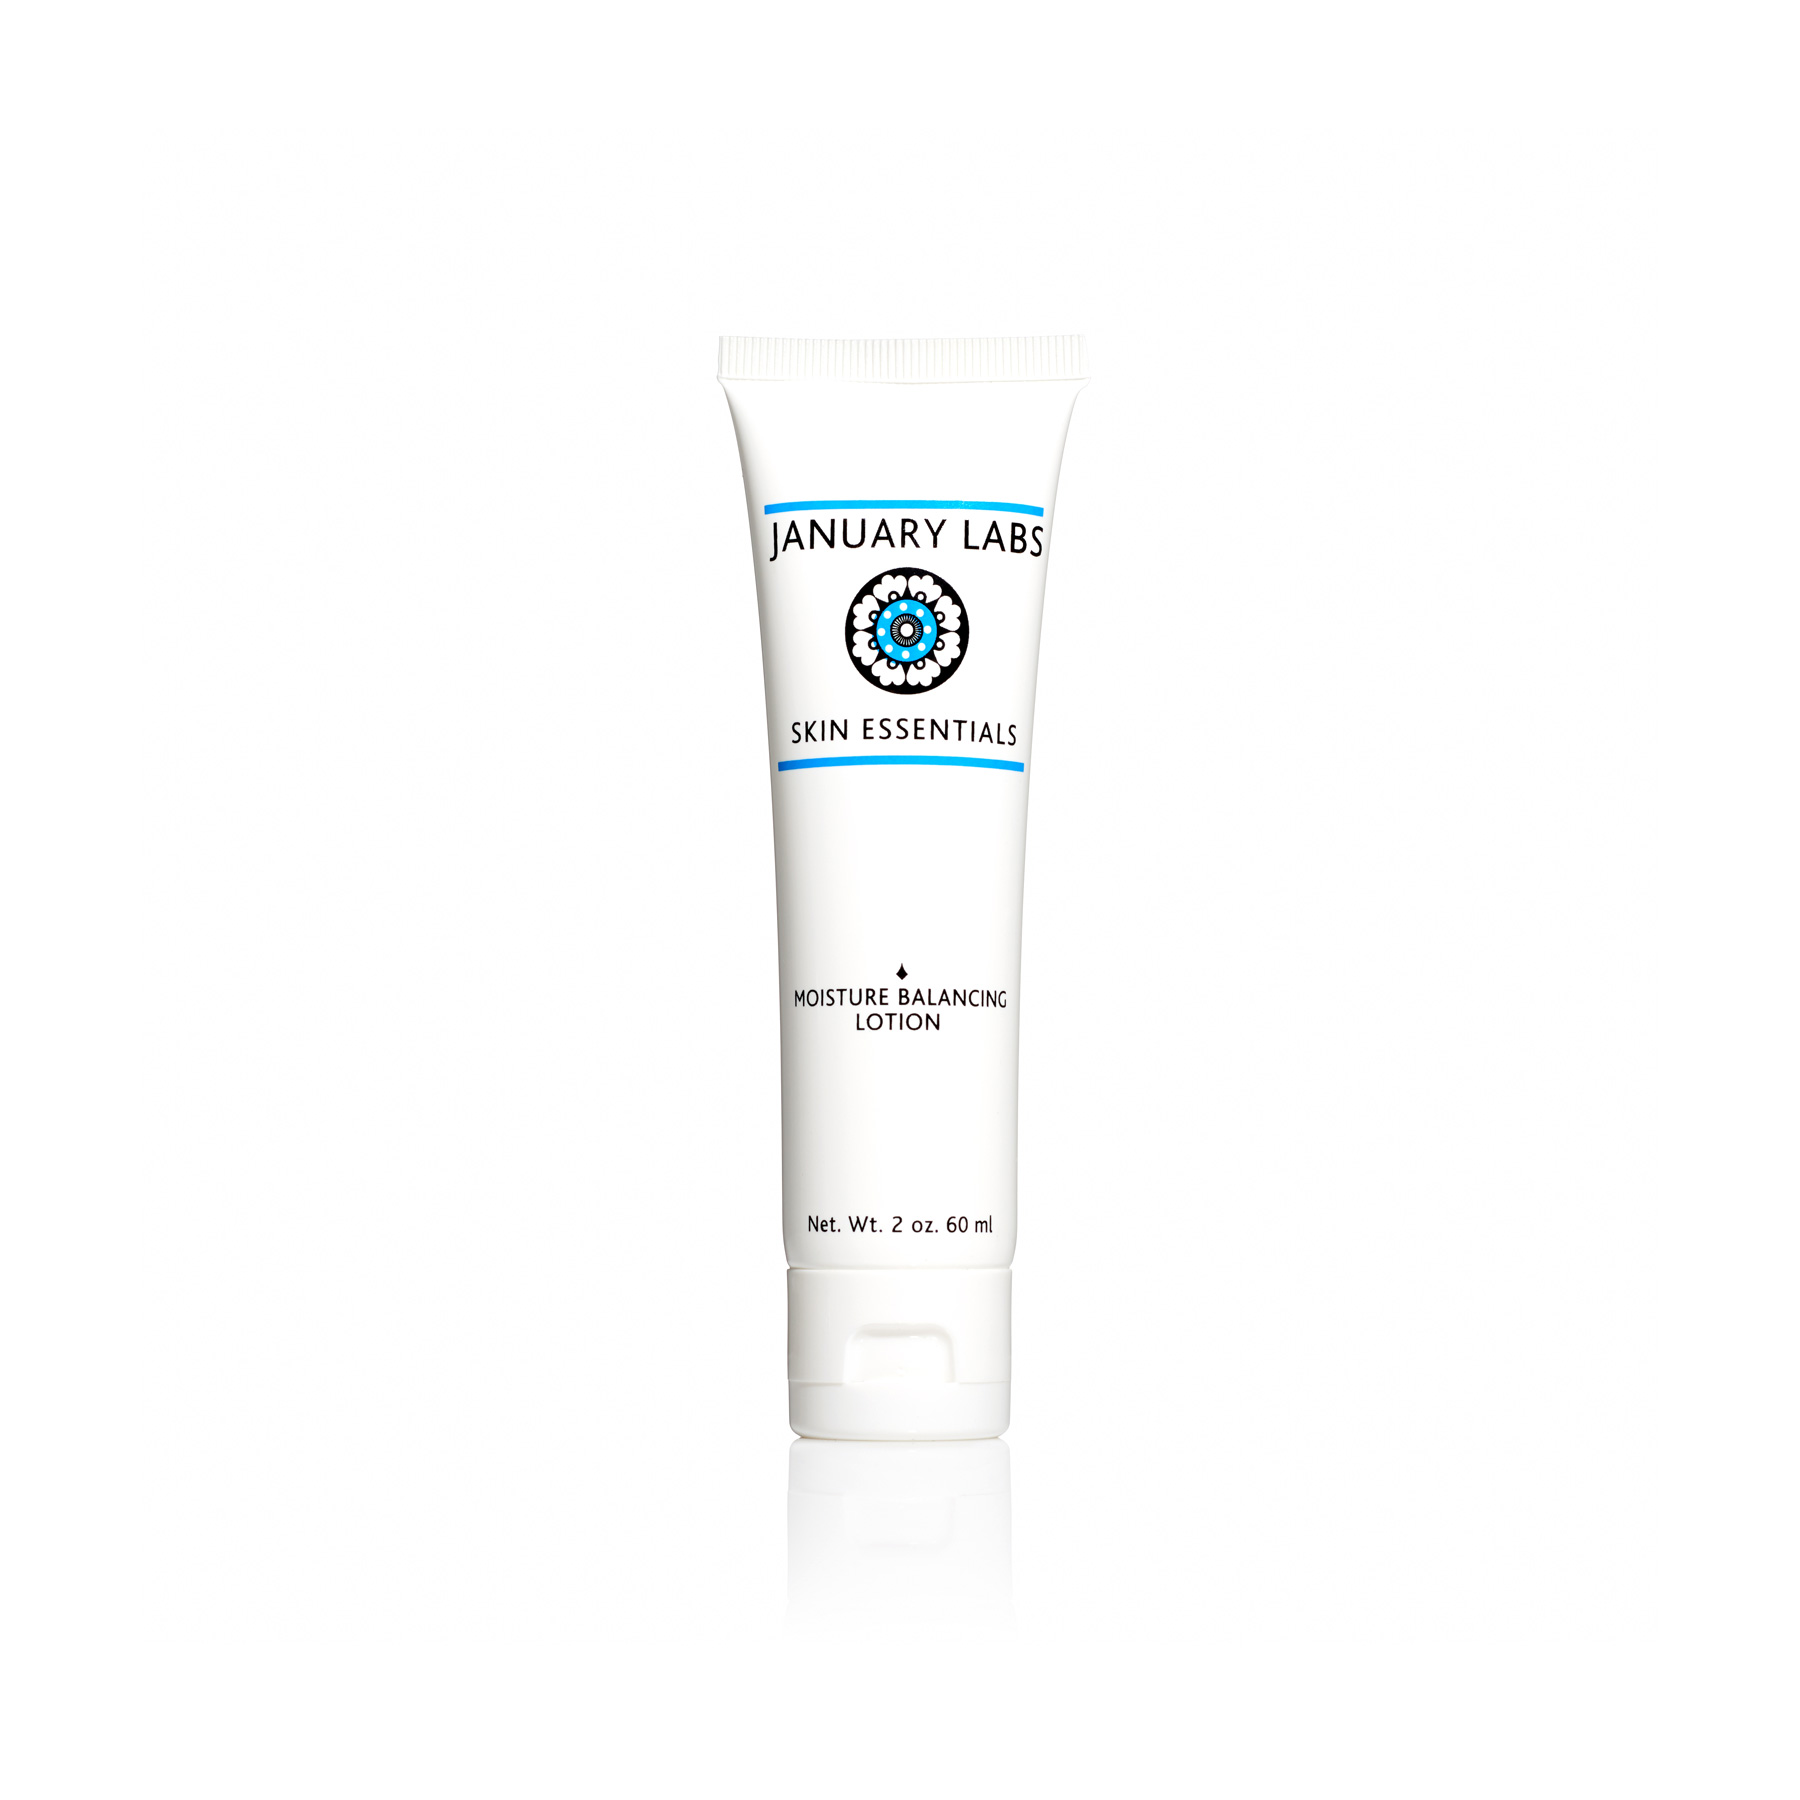 Balancing Lotion - $28   Light lotion  Easy and light. Good glide, silky feel. Absorbs easily.